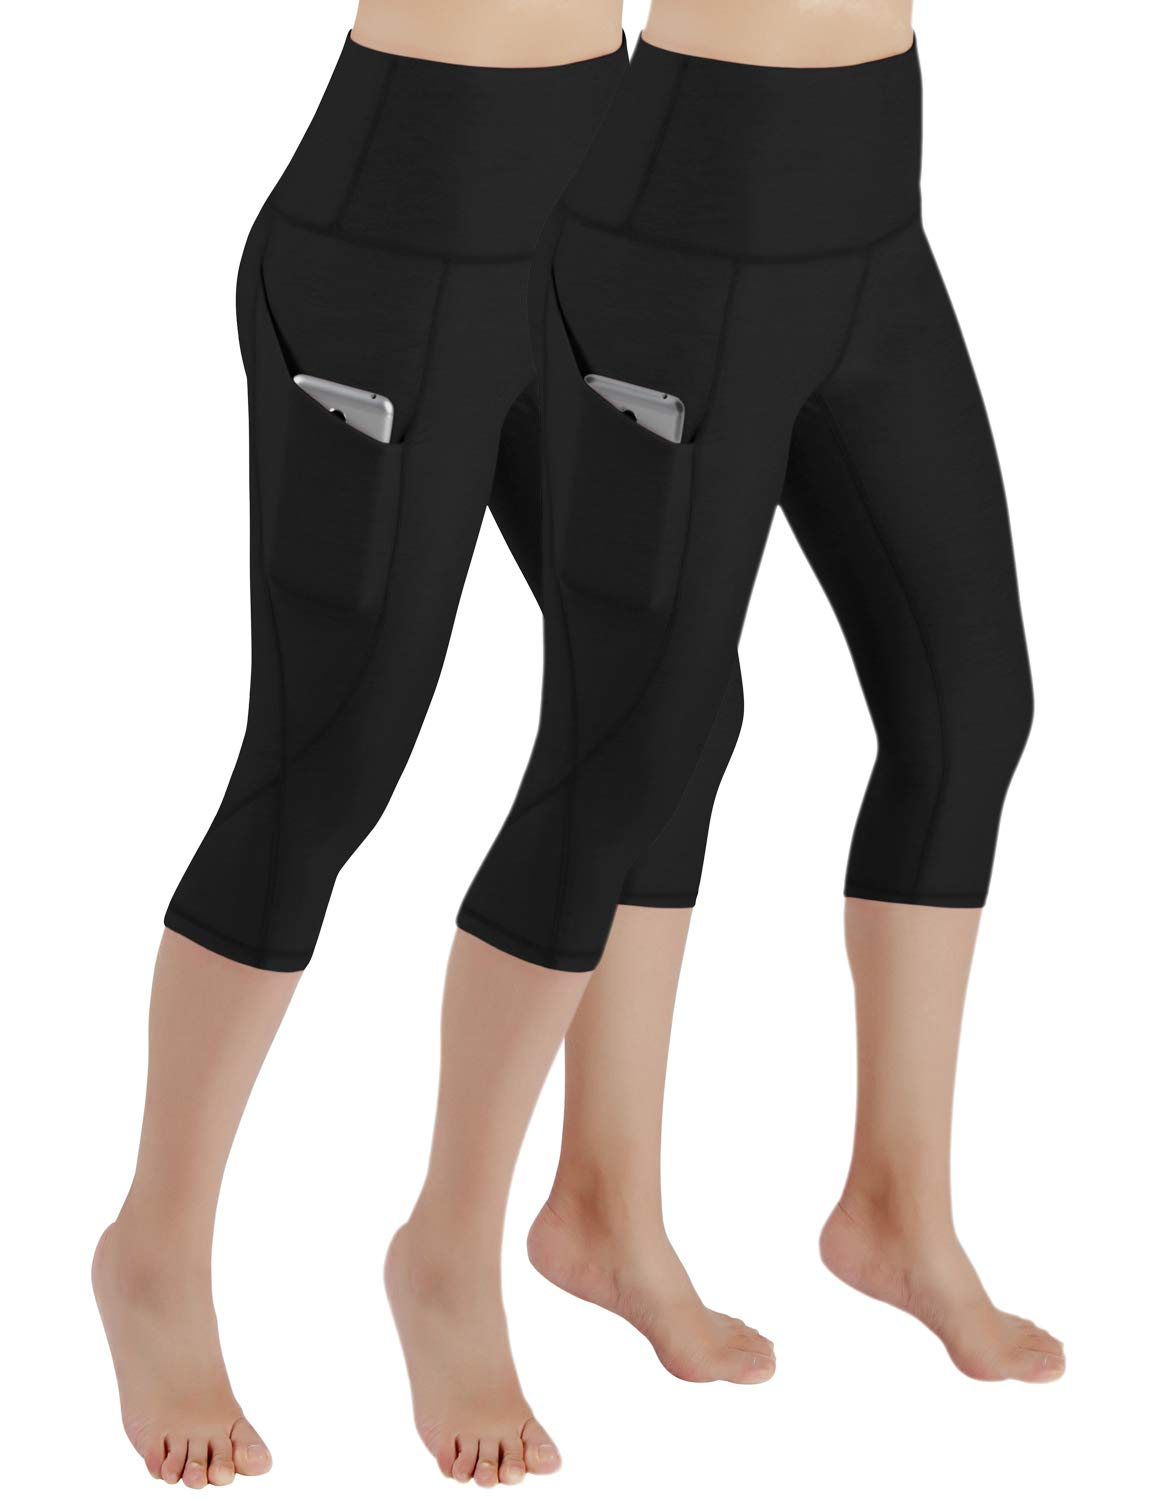 ODODOS Women's High Waist Yoga Capris with Pockets,Tummy Control,Workout Capris Running 4 Way Stretch Yoga Leggings with Pockets,Black2Pack,X-Large by ODODOS